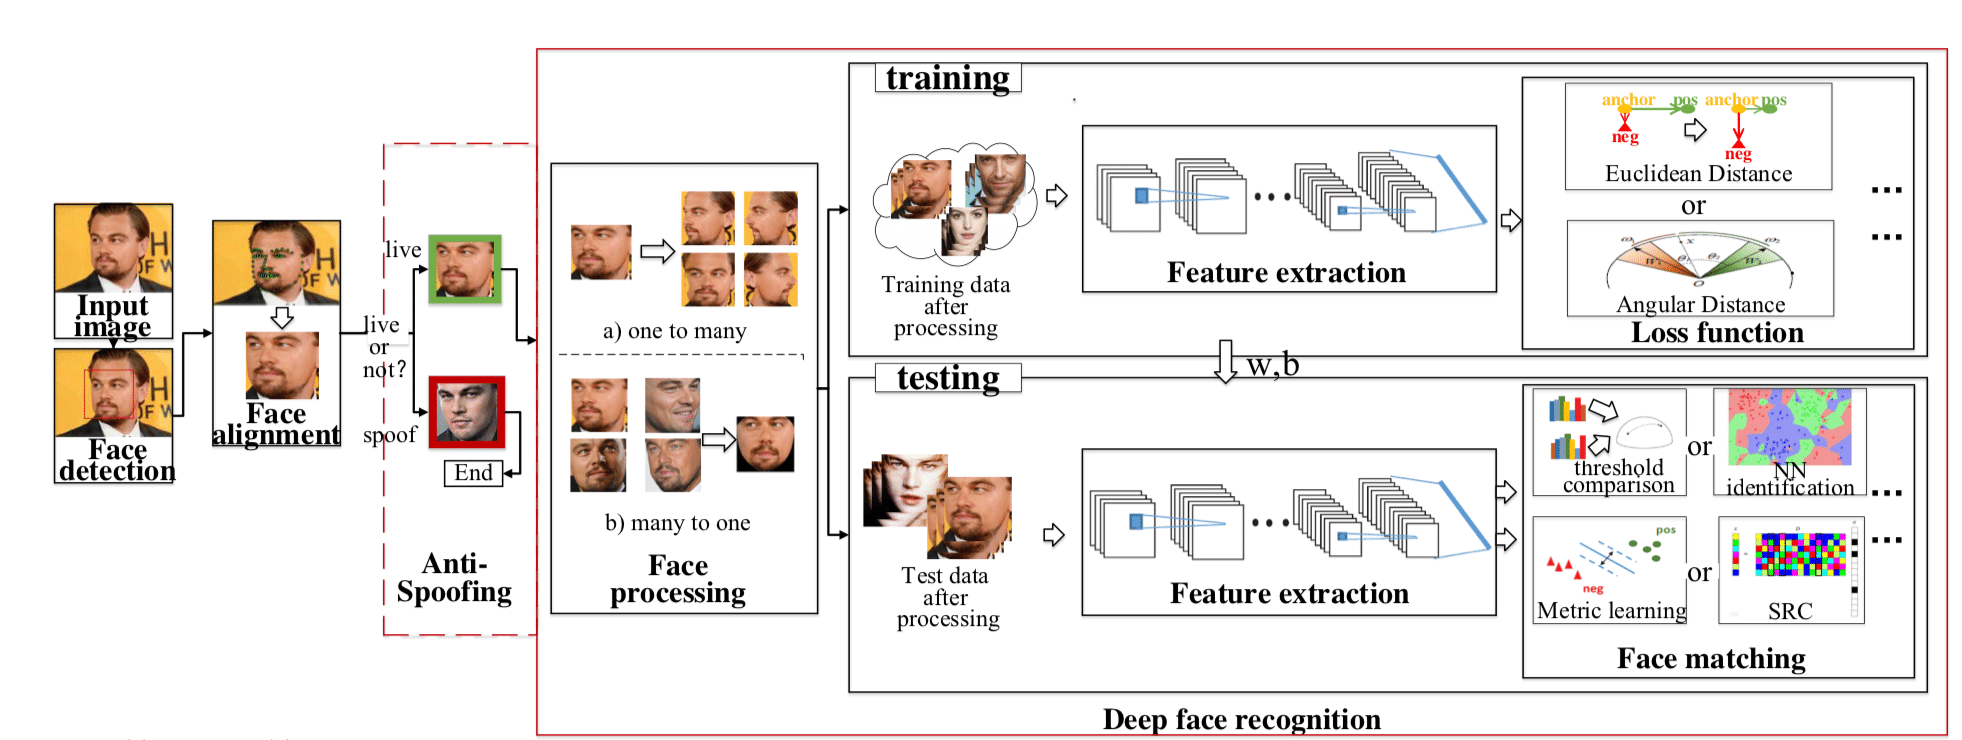 How a picture of a face gets analyzed for recognition using machine learning.